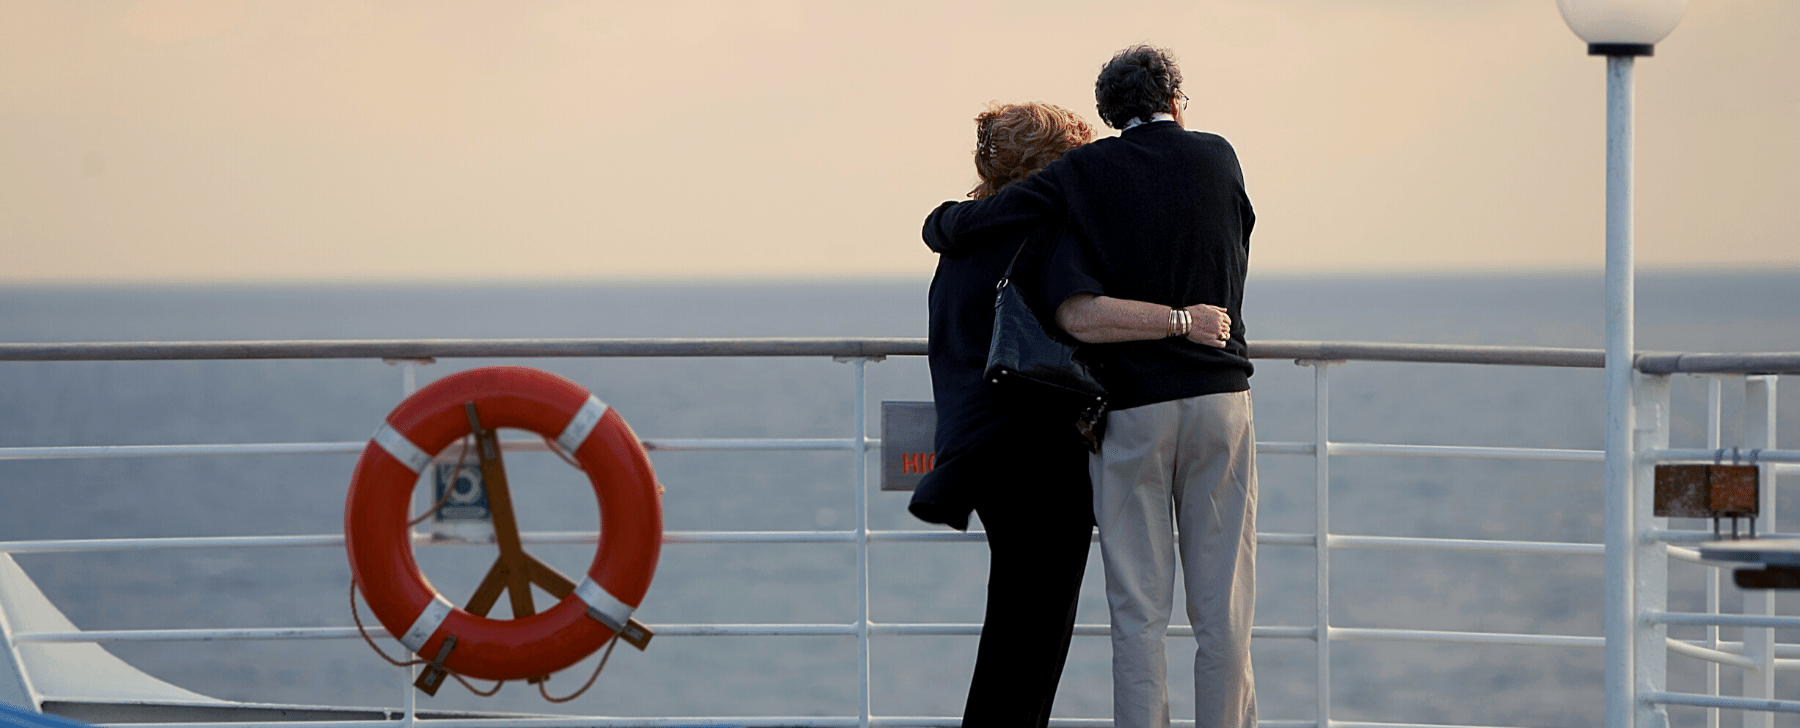 AN ELDERLY COUPLE LOOKING OUT TO SEE HUGGING ON A CRUISE SHIP AT SUNSET RETIREMENT PLANNING